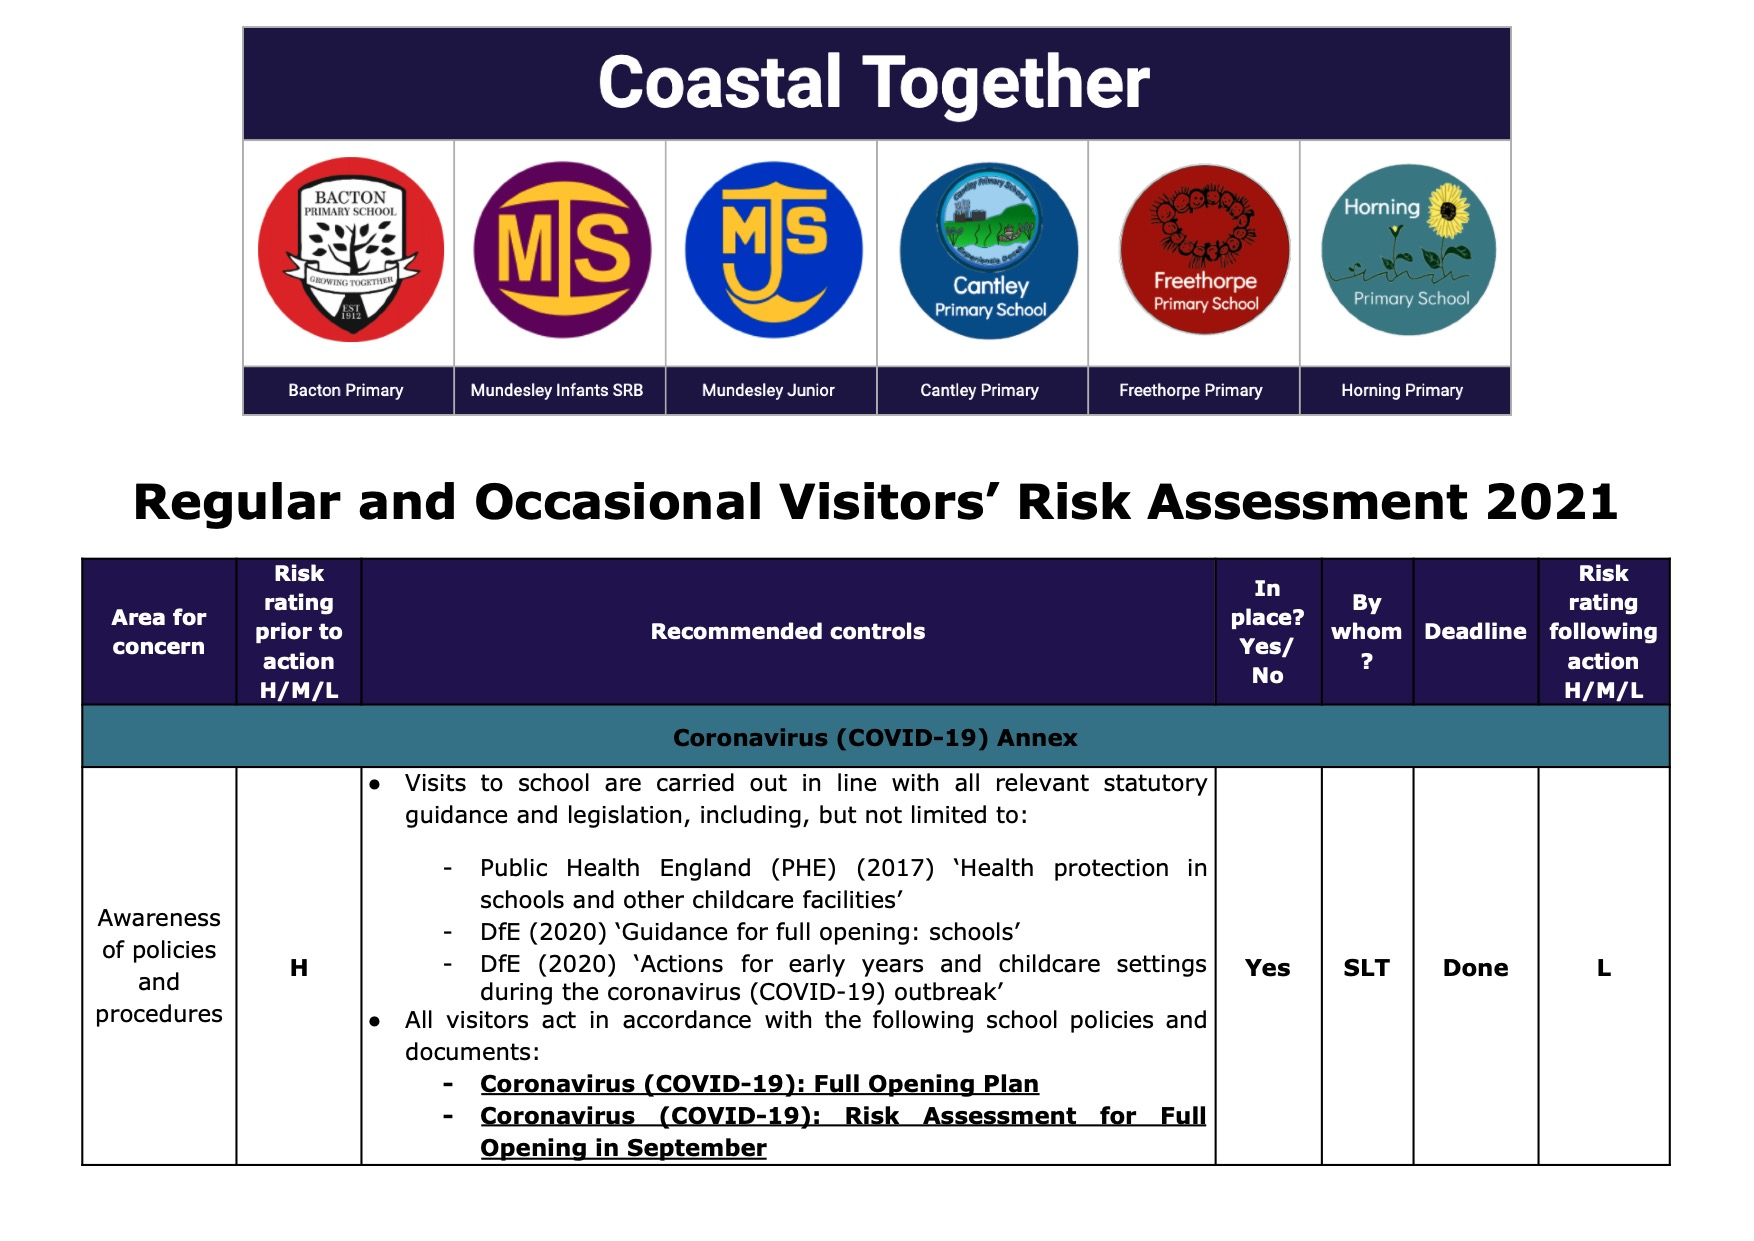 Regular And Occasional Visitors Risk Assessment 2021